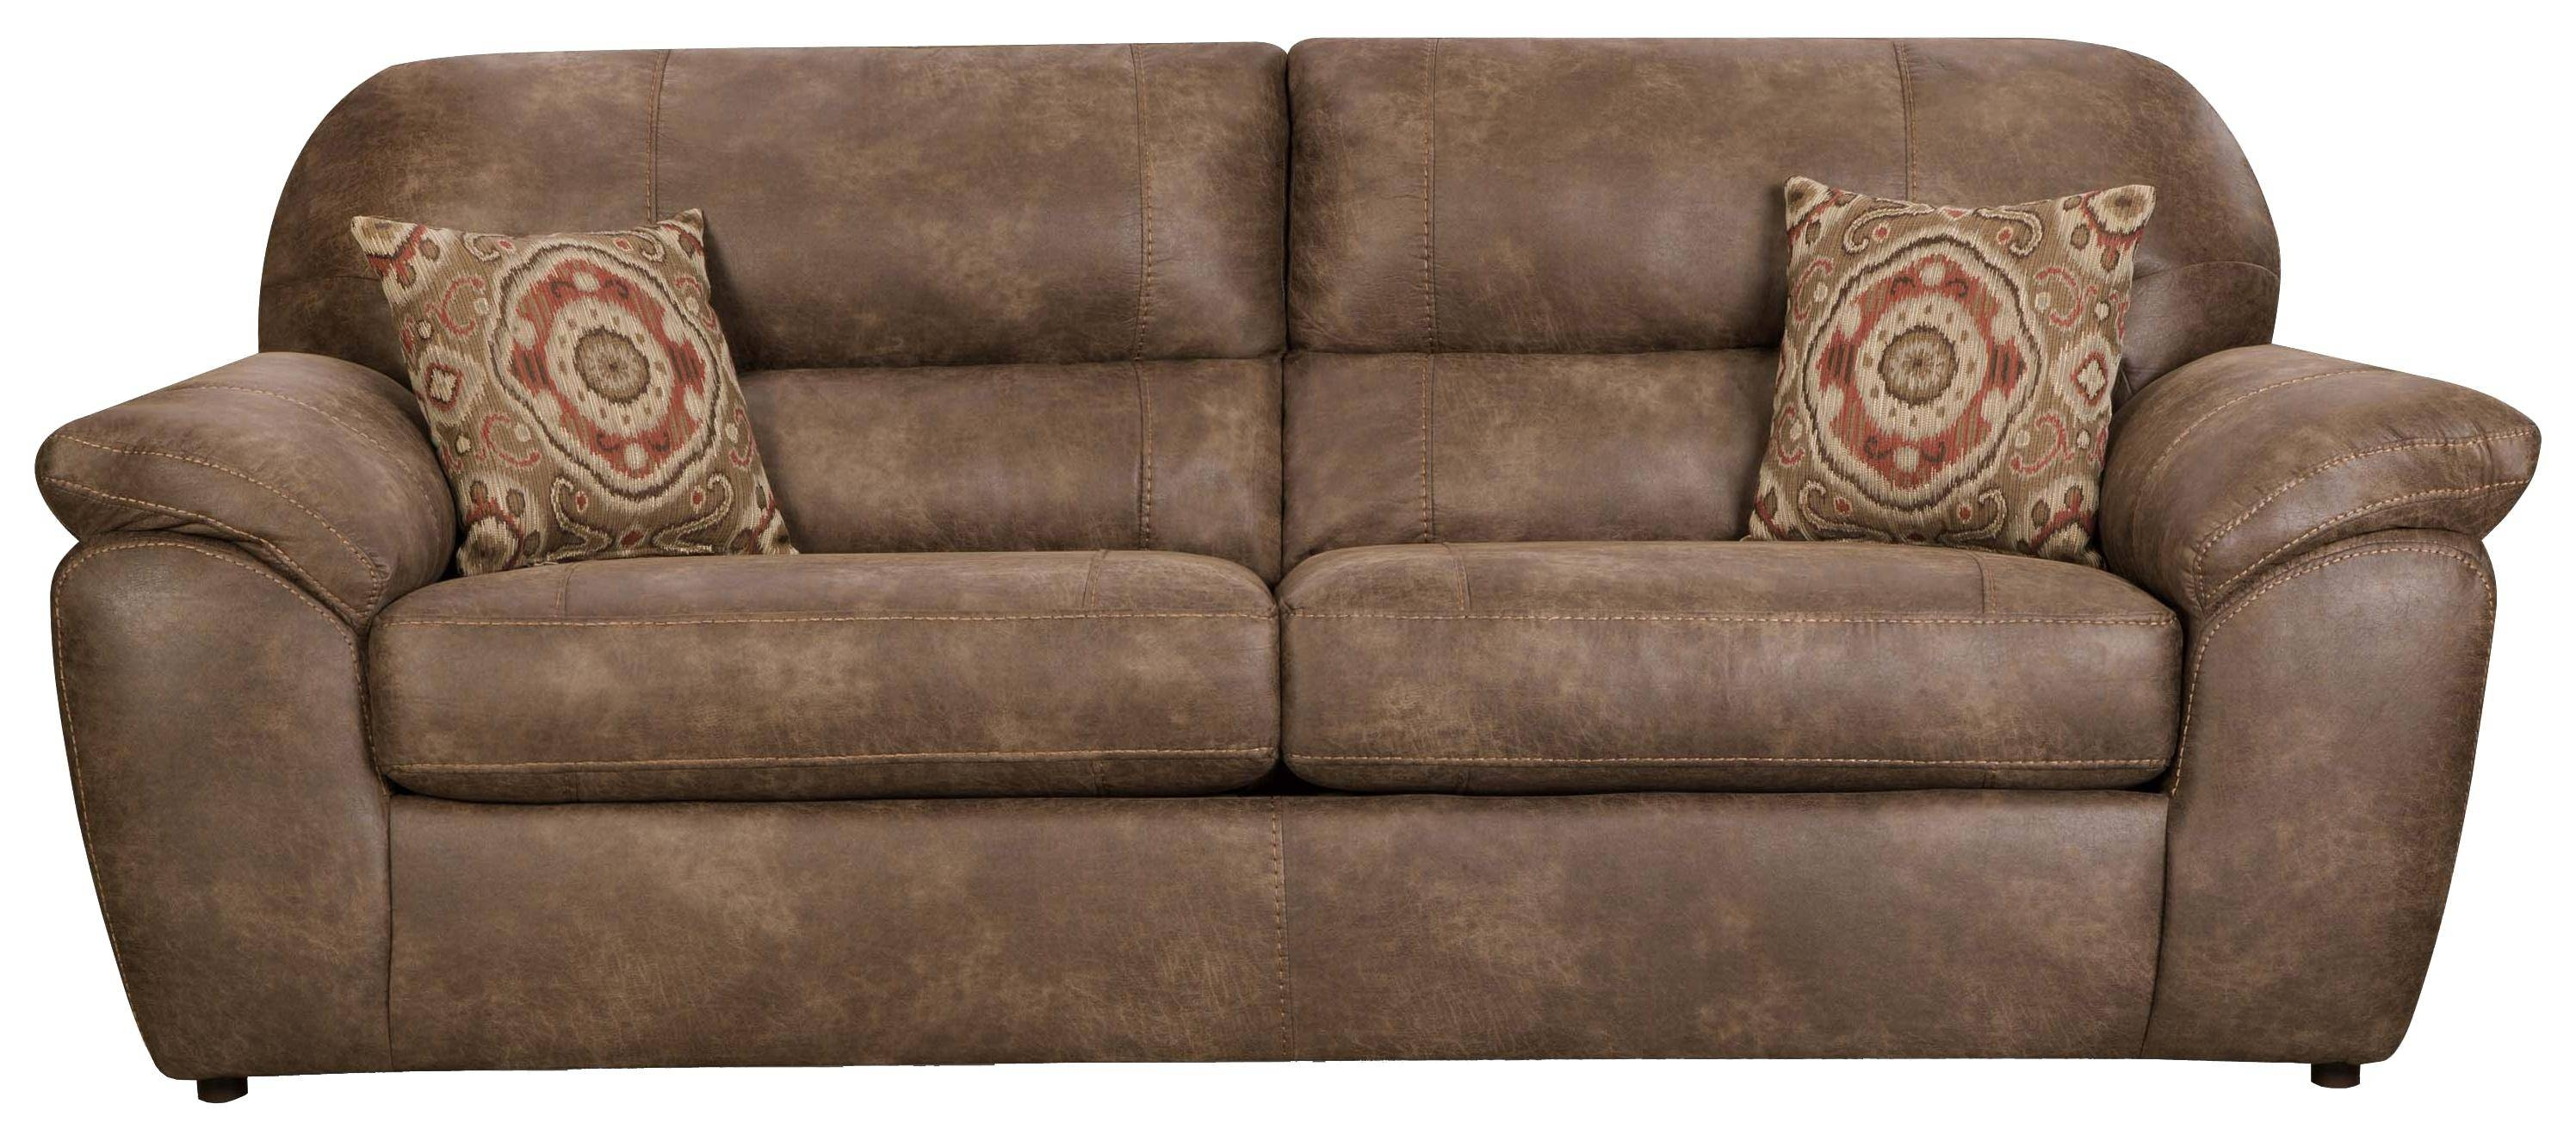 Casual Faux Leather Plush Sofacorinthian | Wolf And Gardiner Intended For Corinthian Sofas (View 2 of 15)